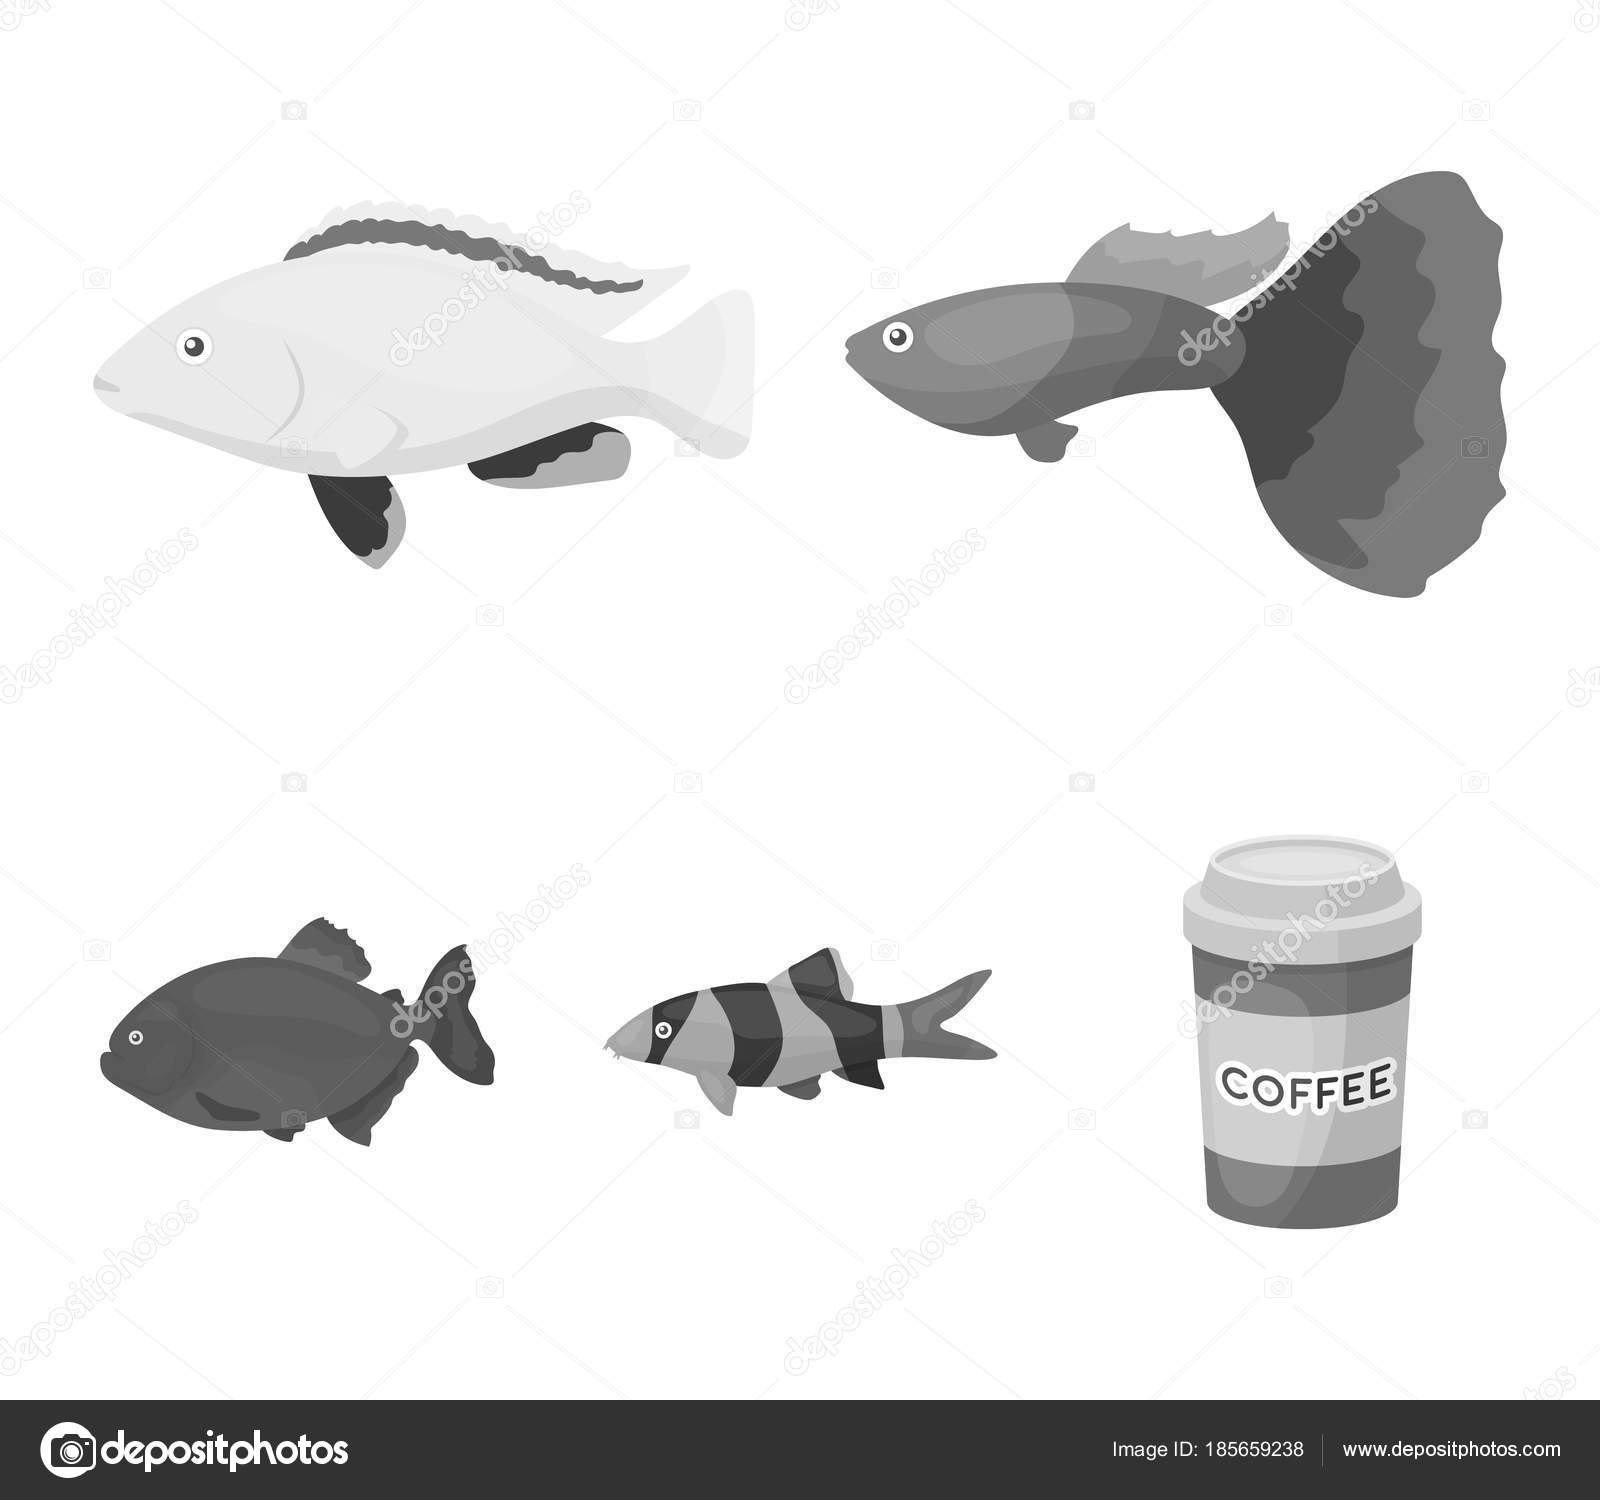 Botia clown piranha cichlid hummingbird guppyfish set botia clown piranha cichlid hummingbird guppyfish set collection icons in monochrome style vector symbol stock illustration vector by pandavector biocorpaavc Images